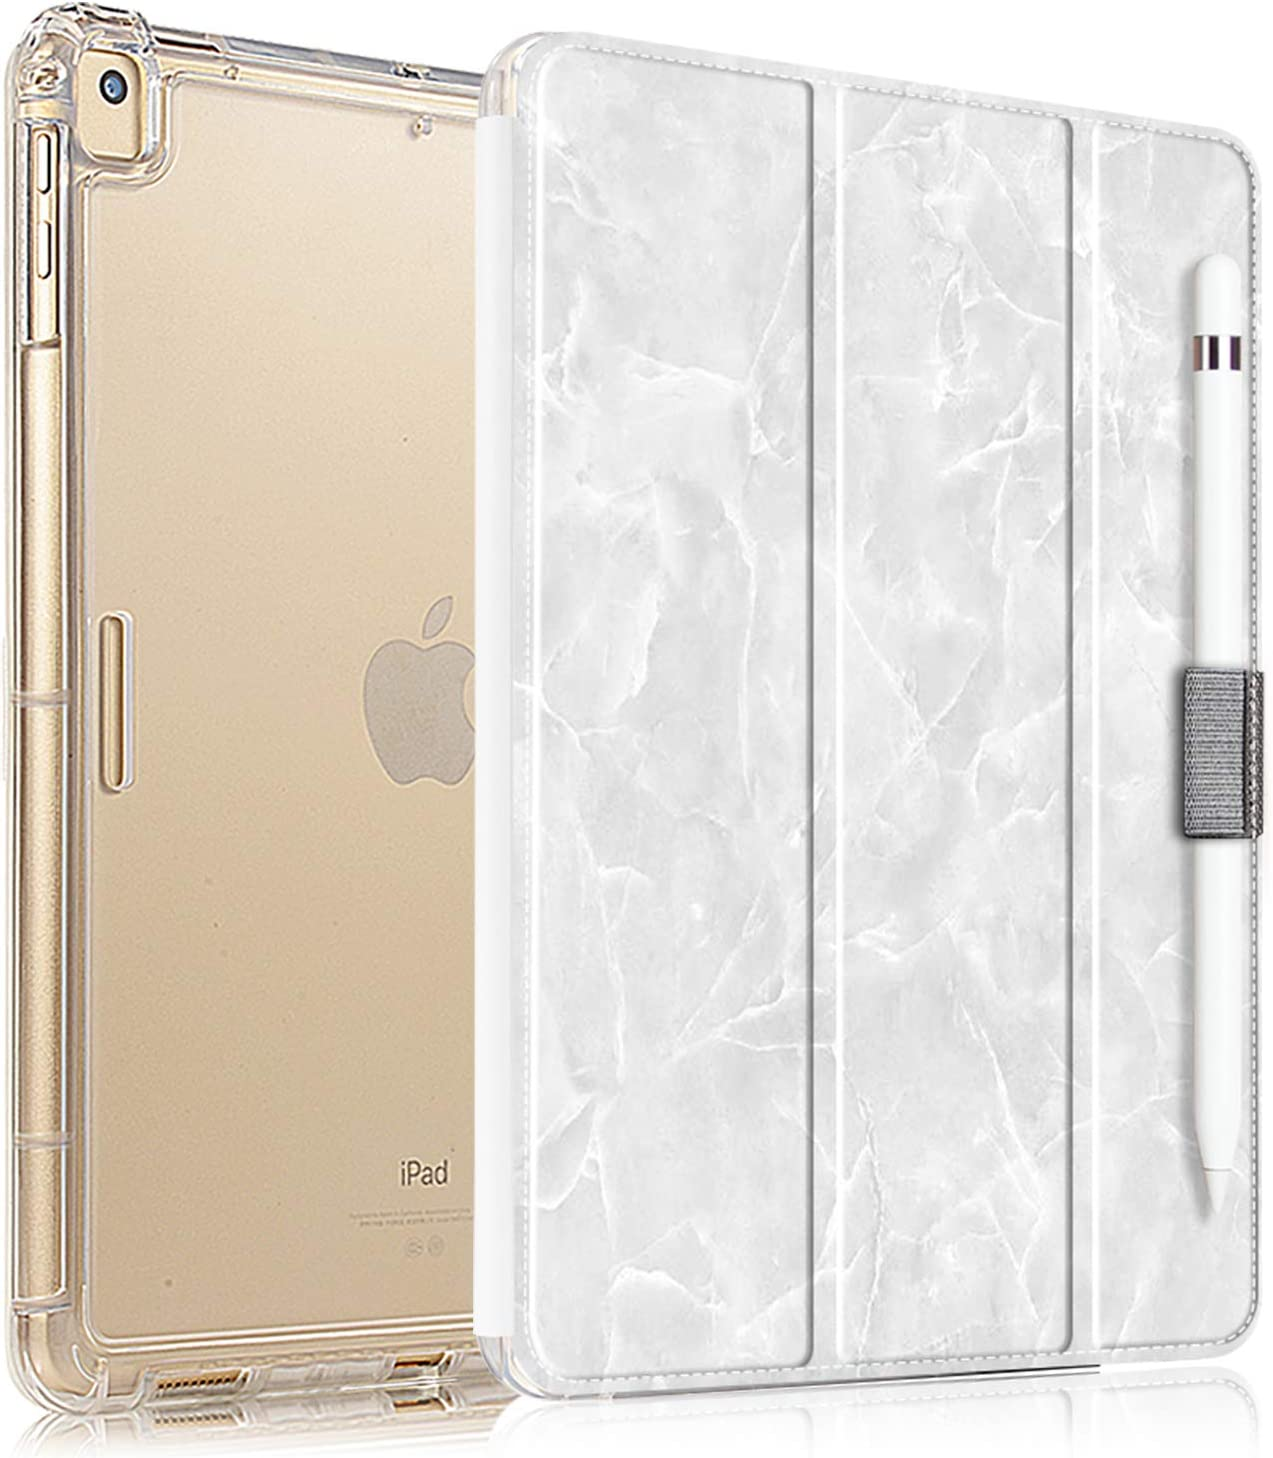 Valkit iPad 9.7 Case 2018 iPad 6th Generation / 2017 iPad 5th Generation Case, iPad Air Case, iPad Air 2 Case - Slim Stand Case with Translucent Frosted Back Cover for iPad 9.7 Inch White Marble